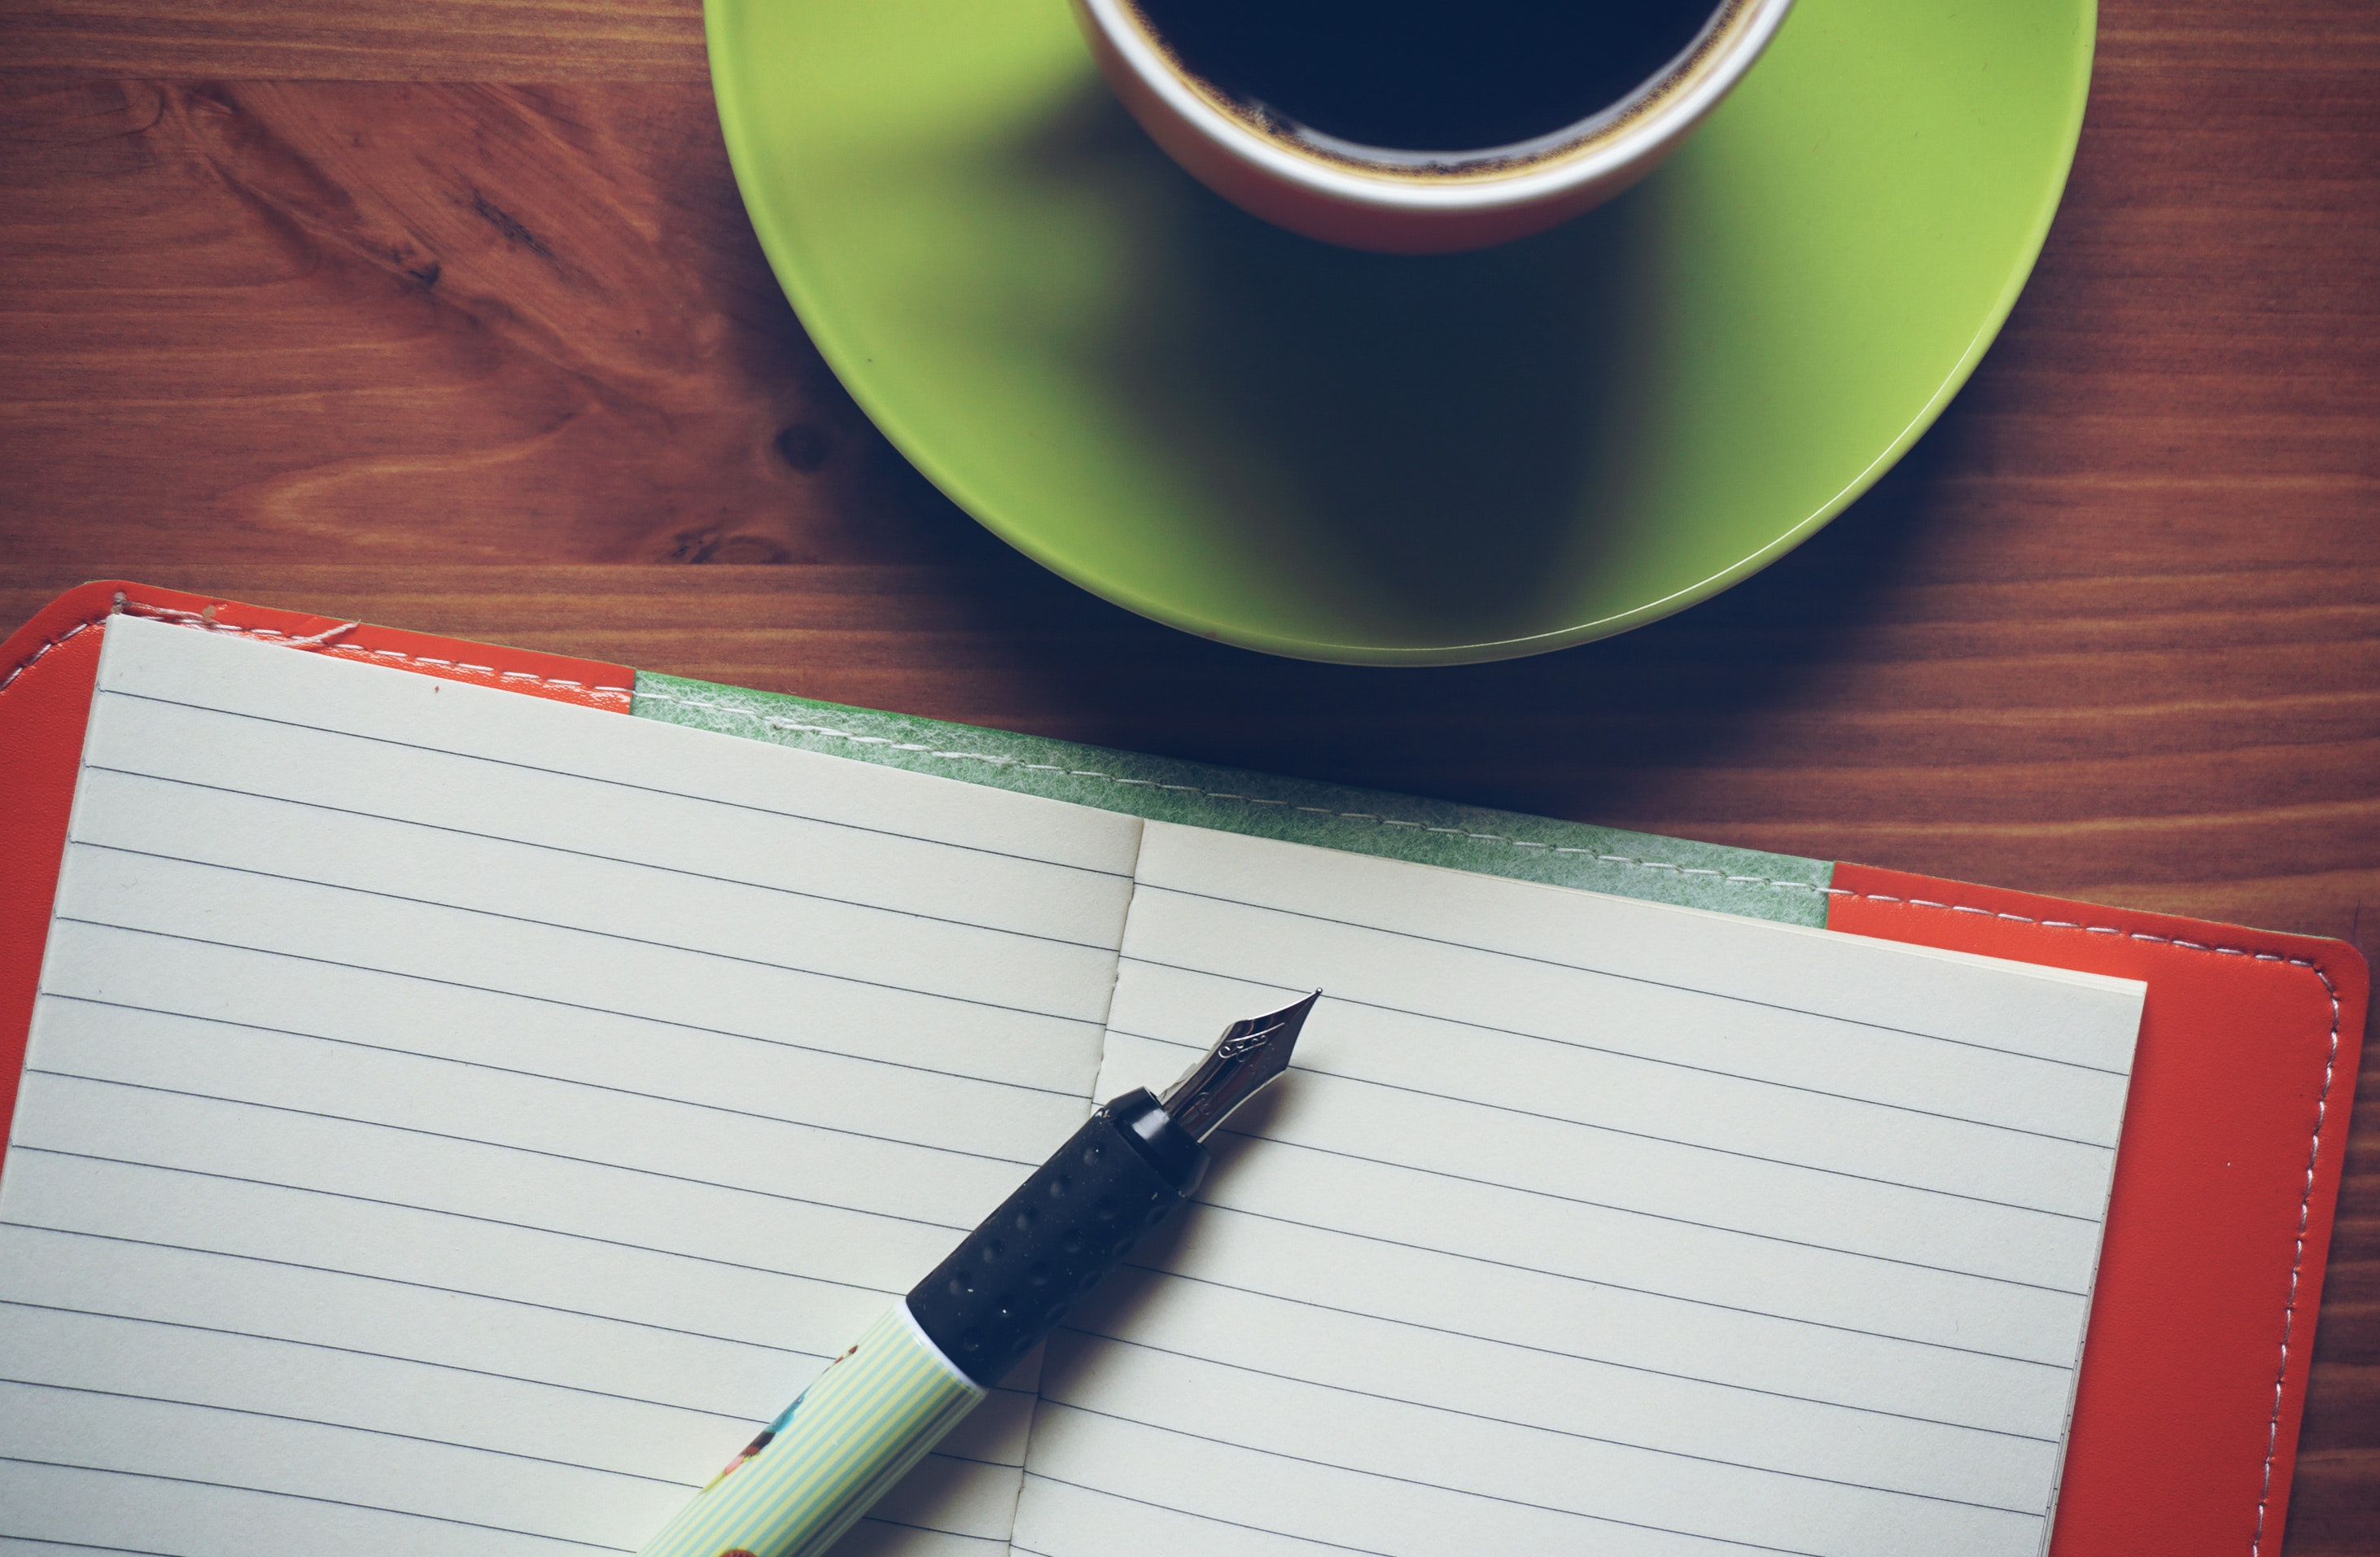 Fountain Pen on Top of Notebook Beside Drinking Mug, Beverage, Cafe, Caffeine, Coffee, HQ Photo